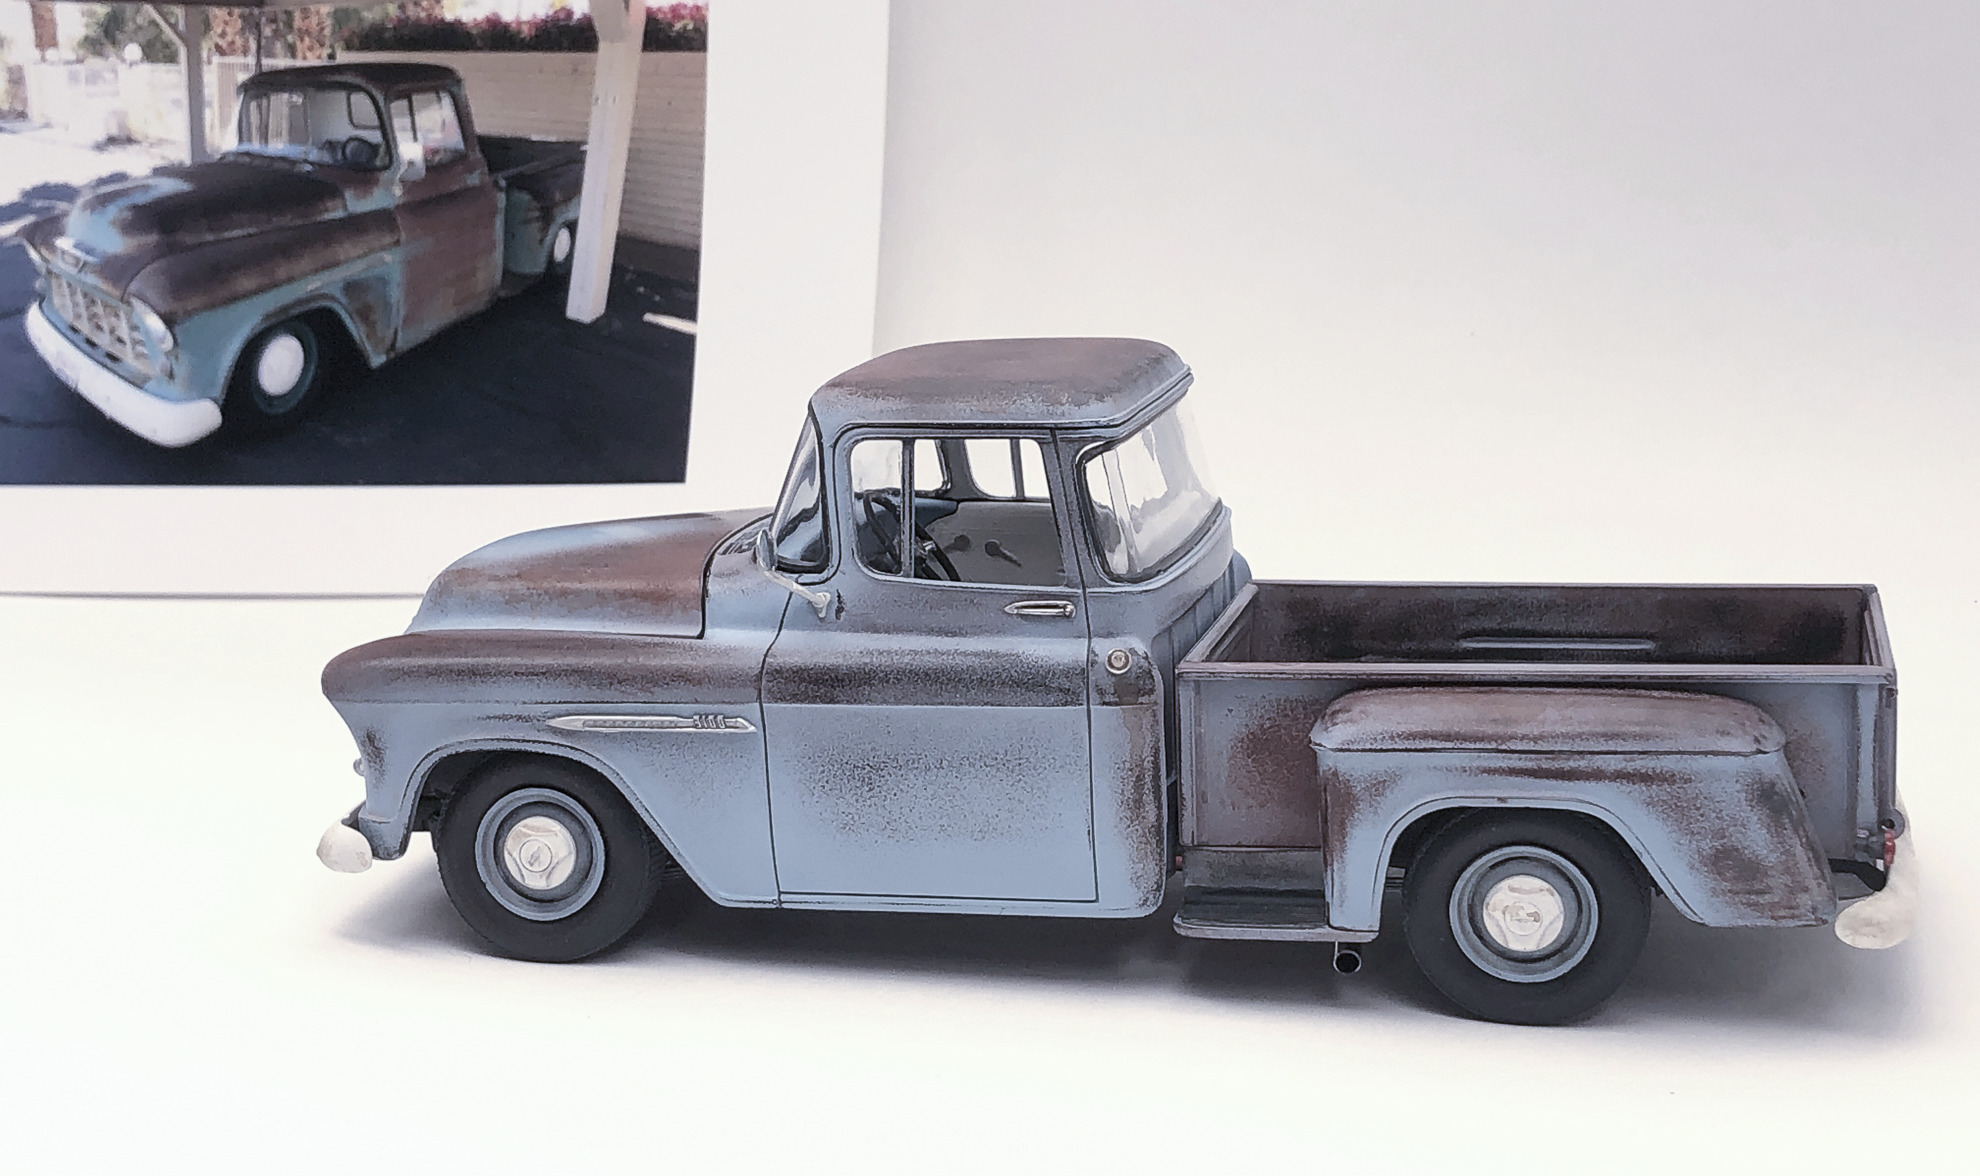 55 Chev Pickup with real truck